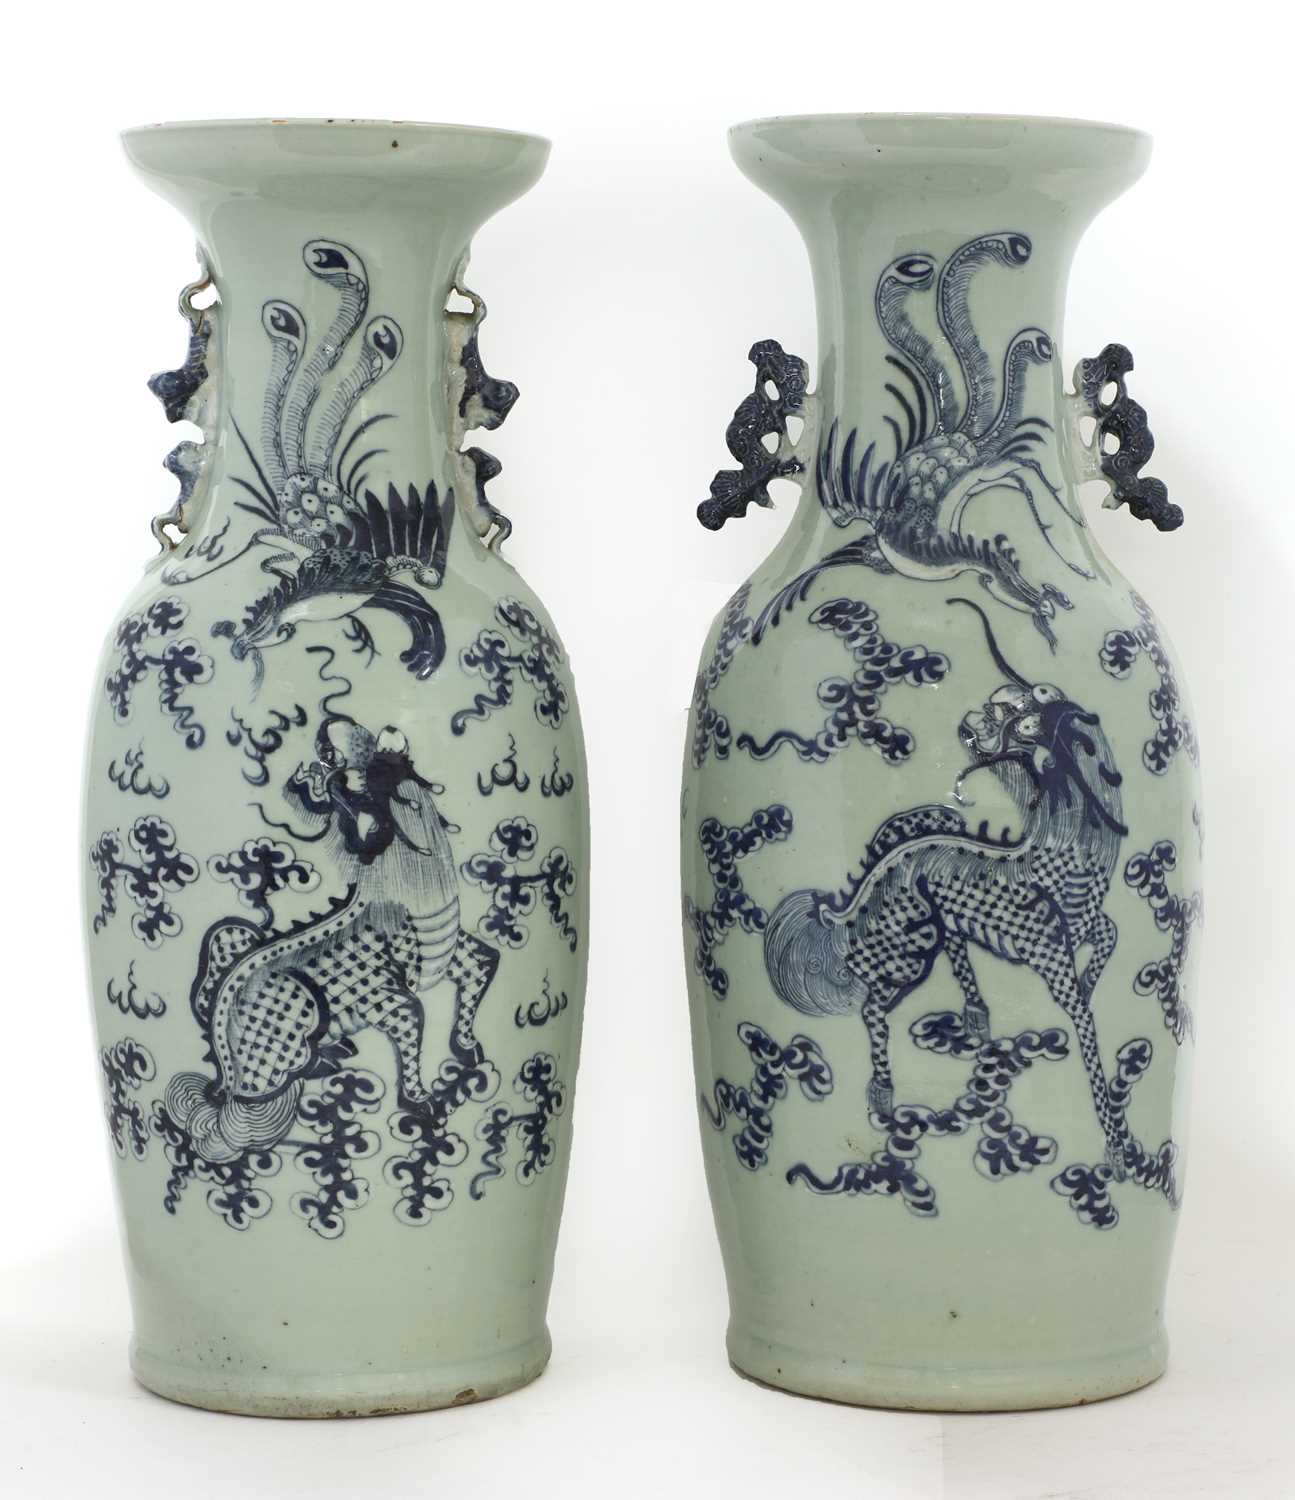 Lot 23-Two Chinese blue and white vases